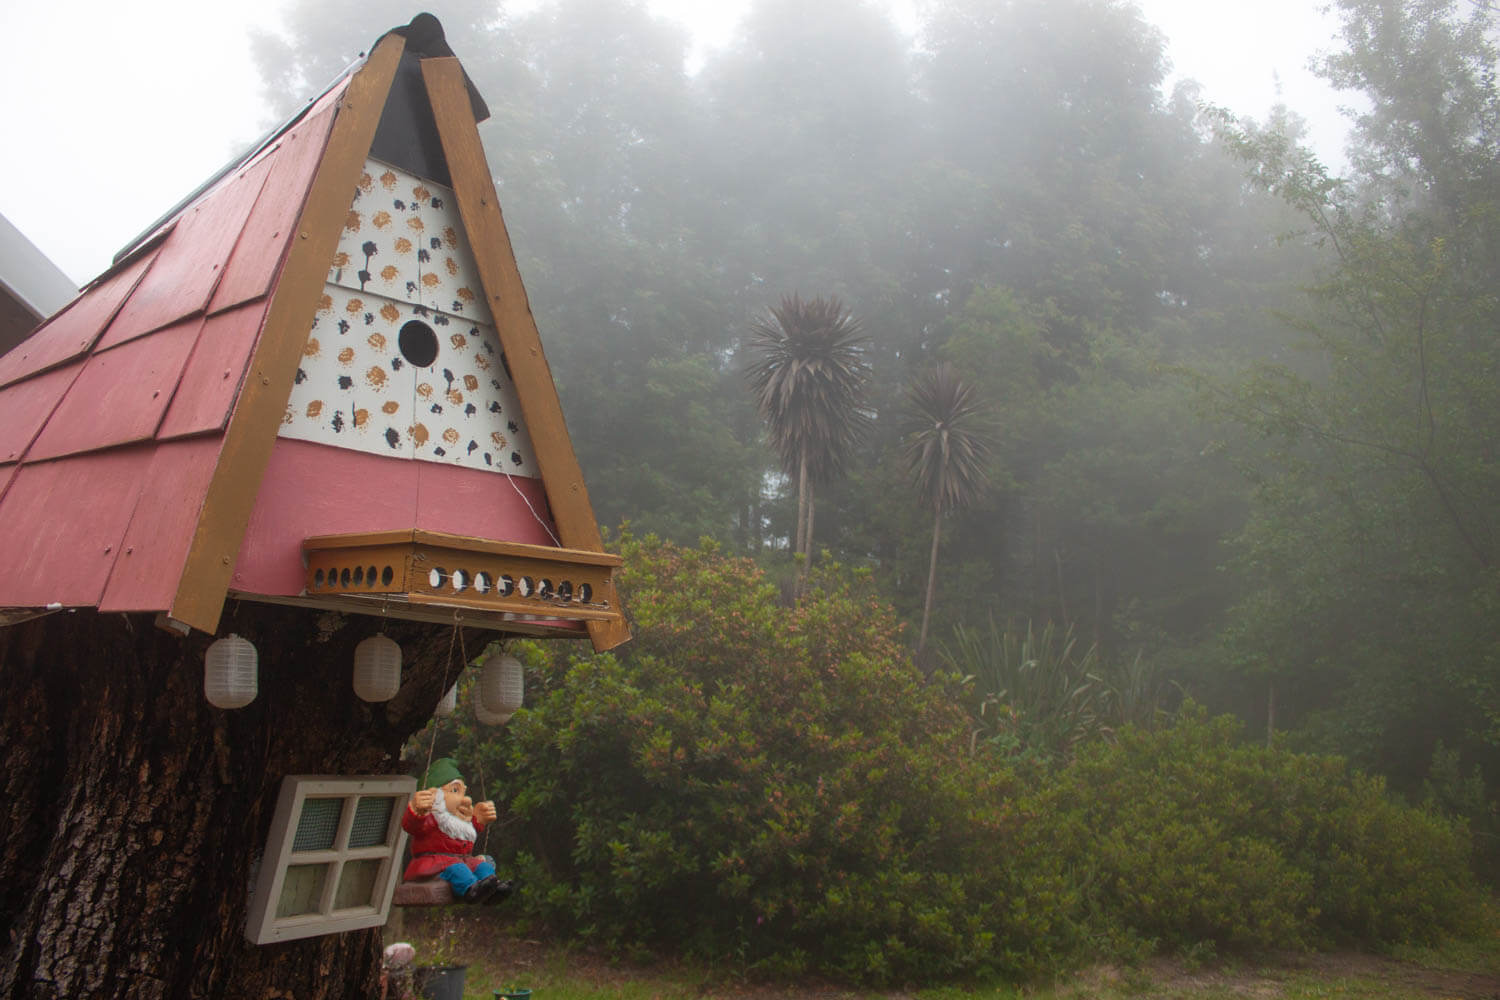 Misty forest and gnome home in Hogsback